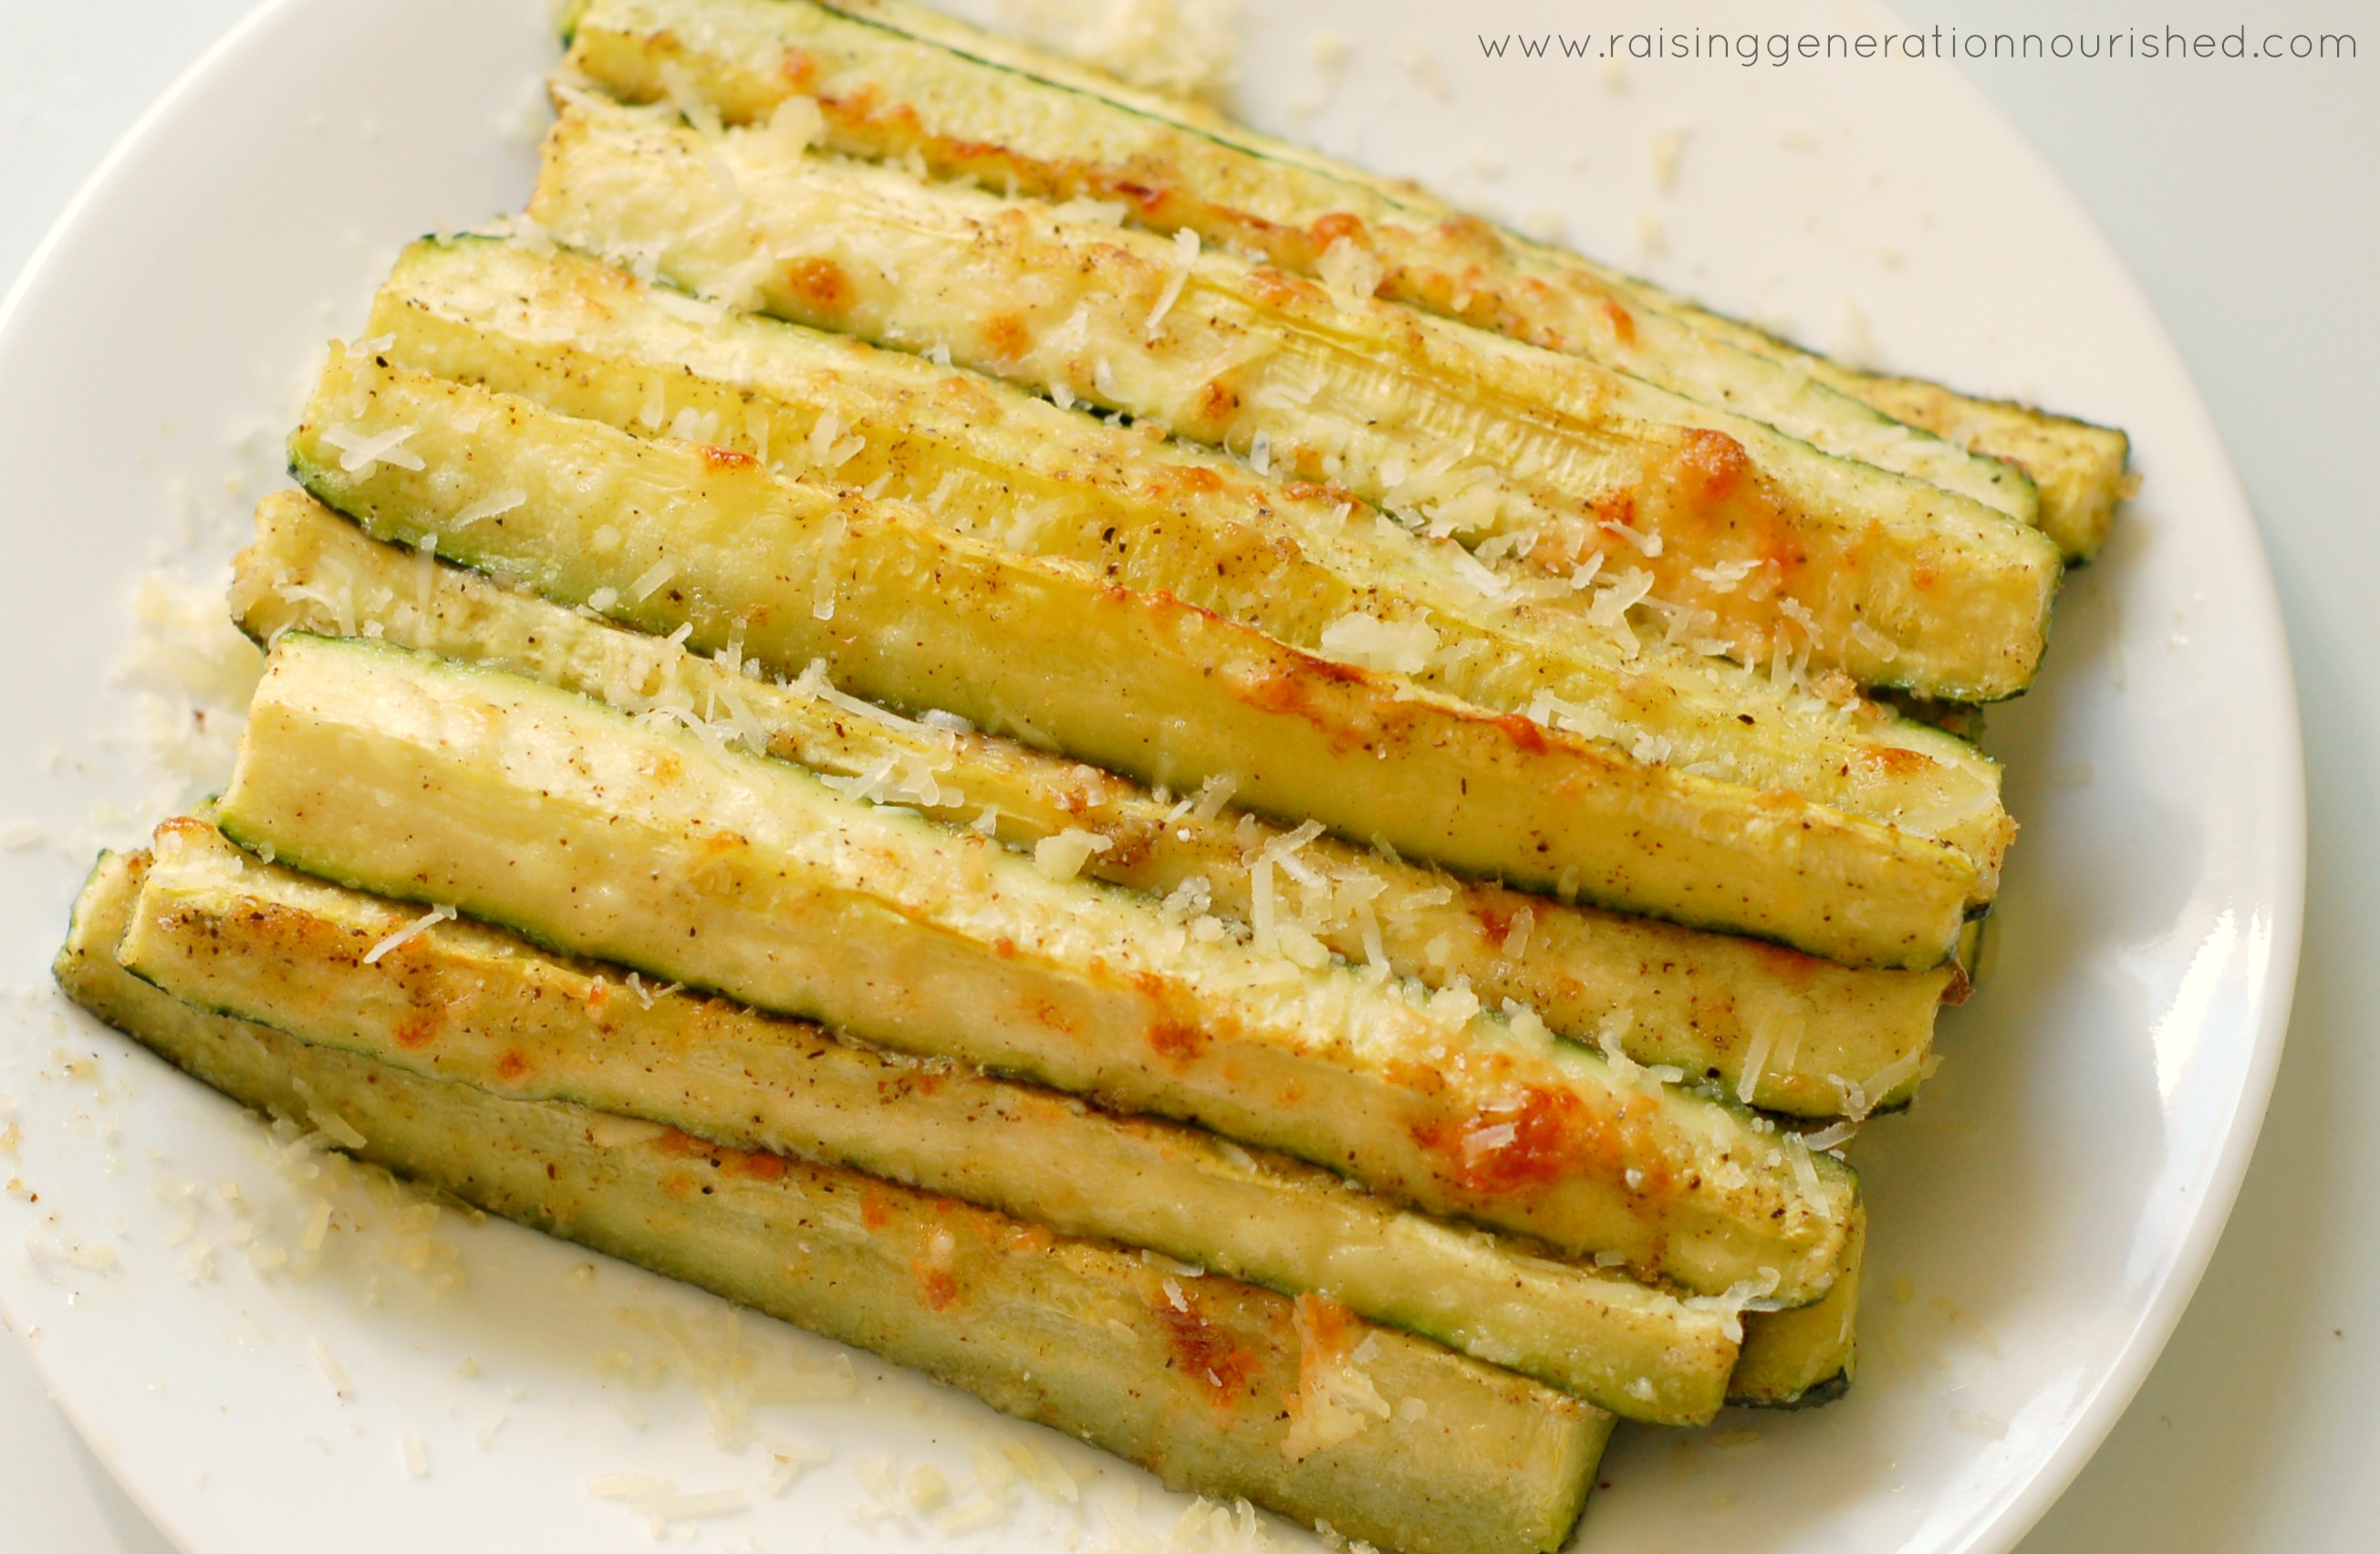 Parmesan Baked Zucchini Spears - Raising Generation Nourished